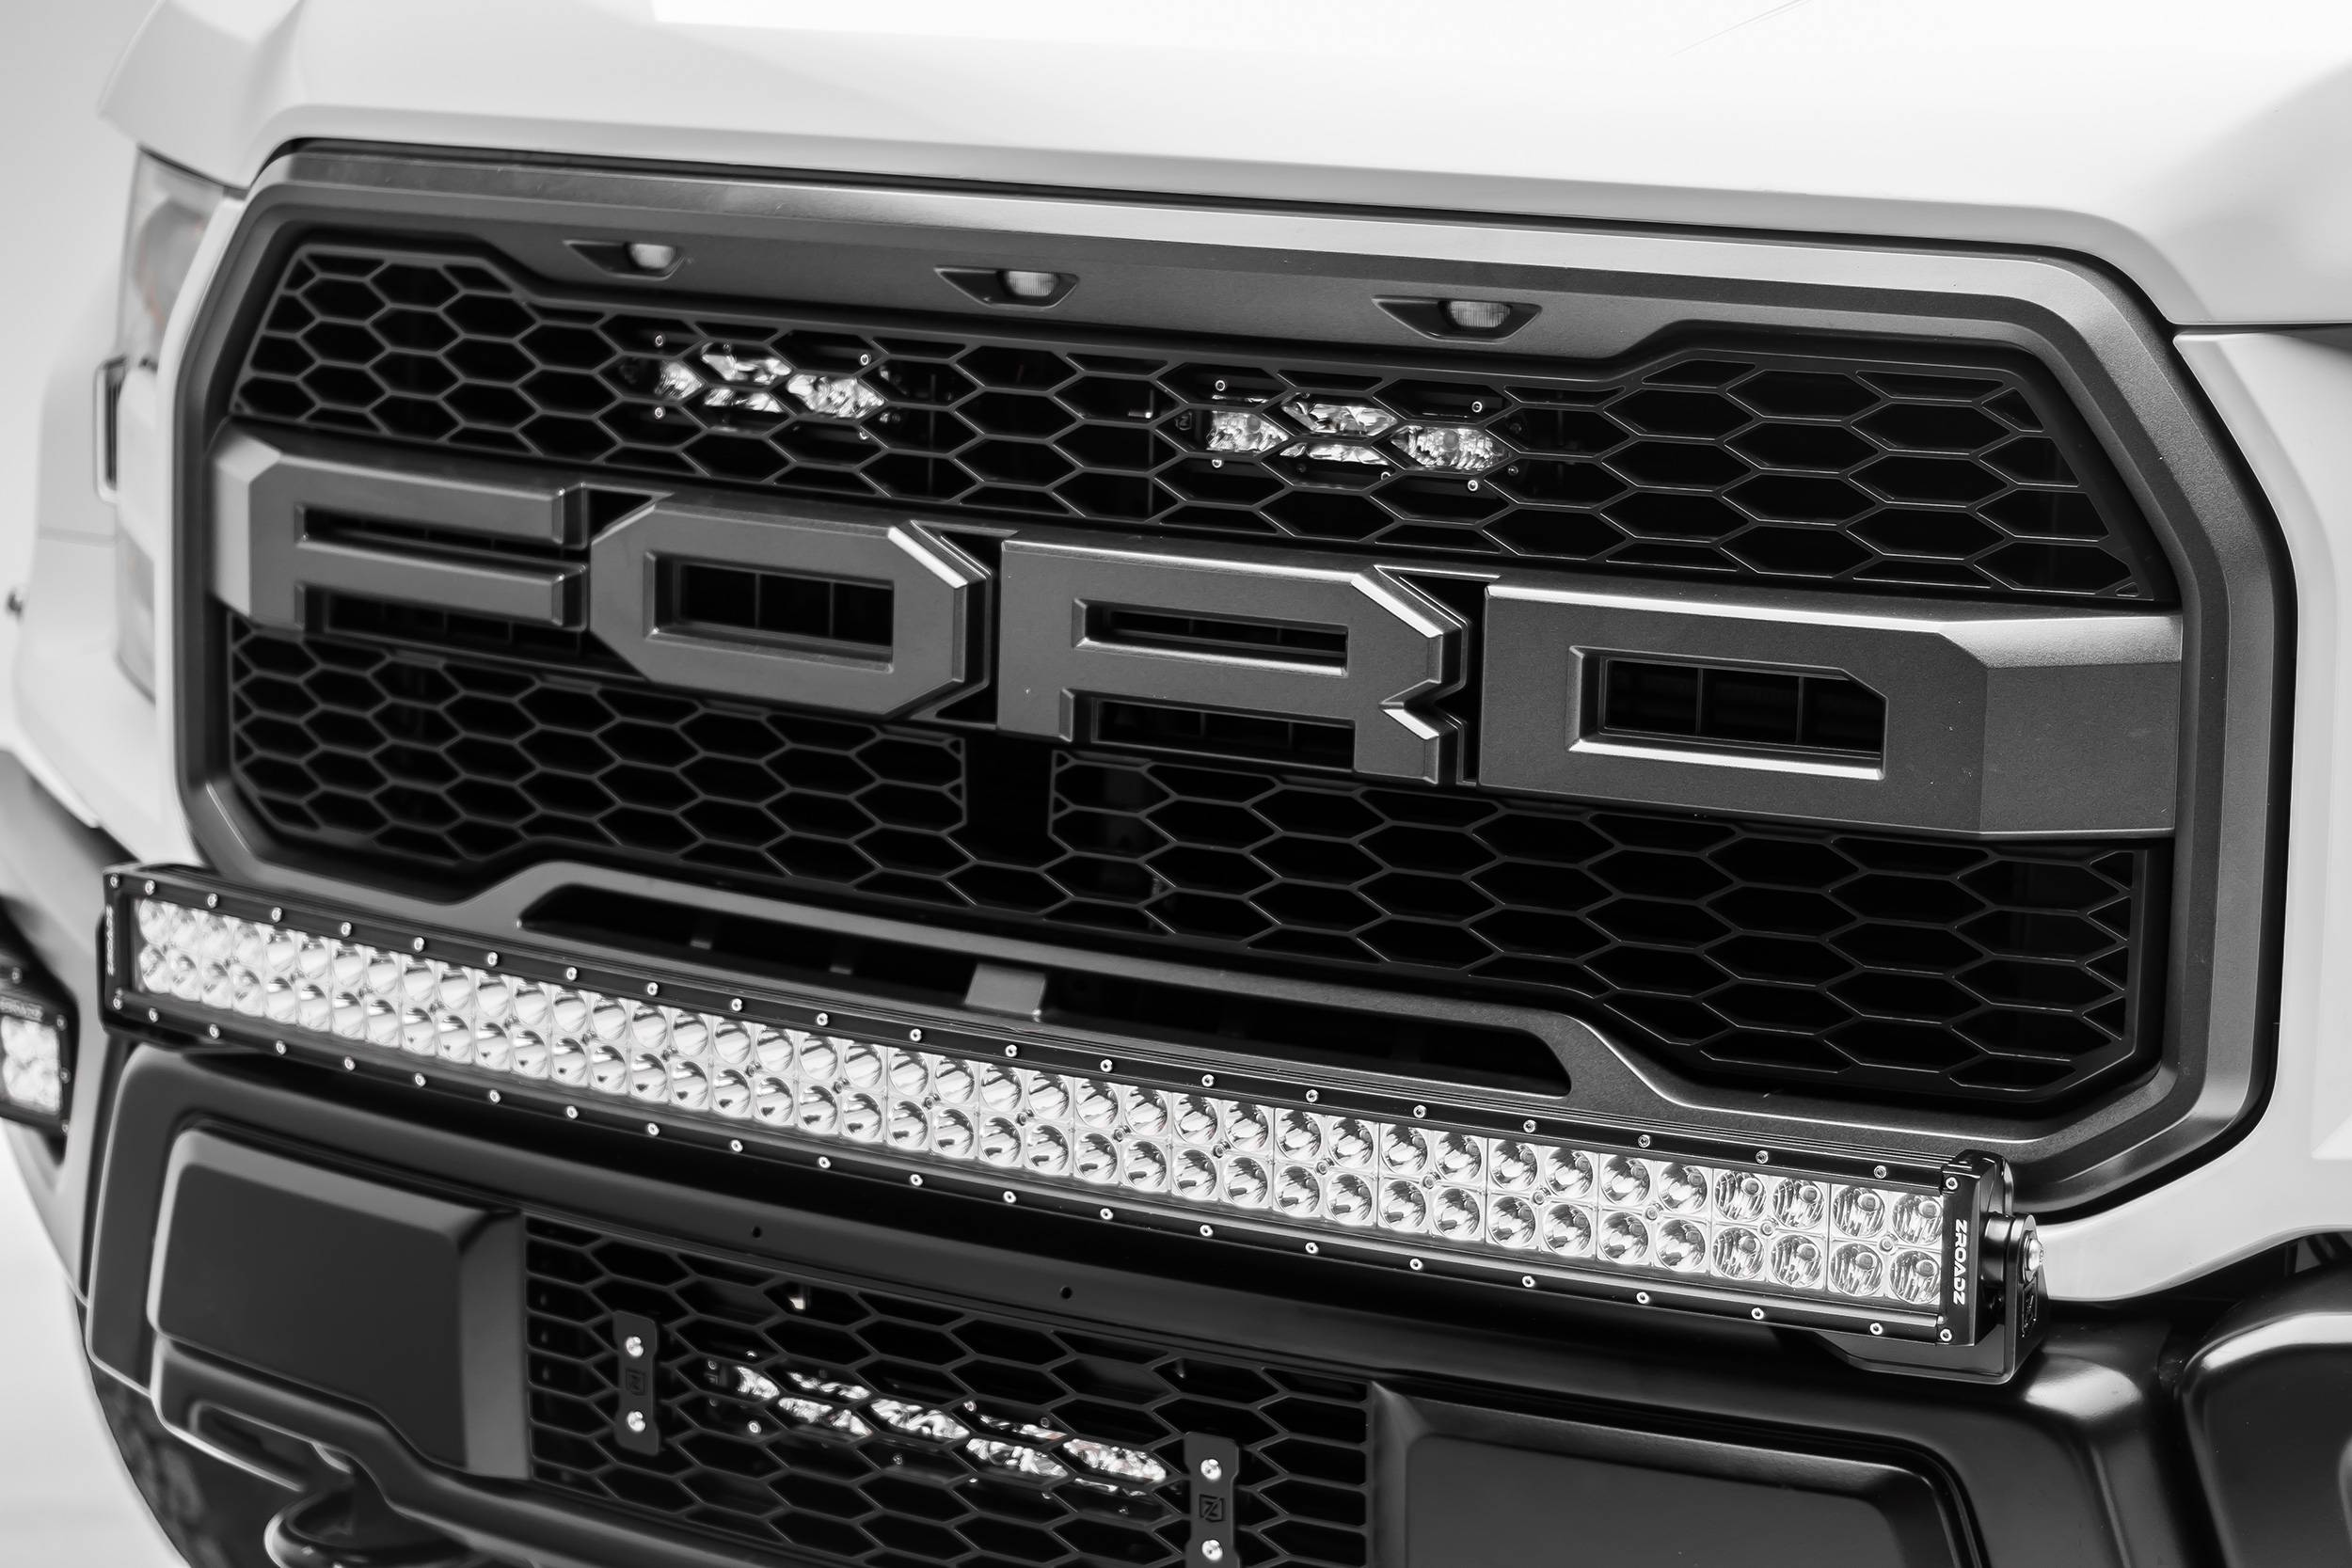 2017 2019 Ford F 150 Raptor Oem Grille Led Kit Incl 2 6 Inch Led Straight Single Row Slim Light Bars Pn Z415651 Kit